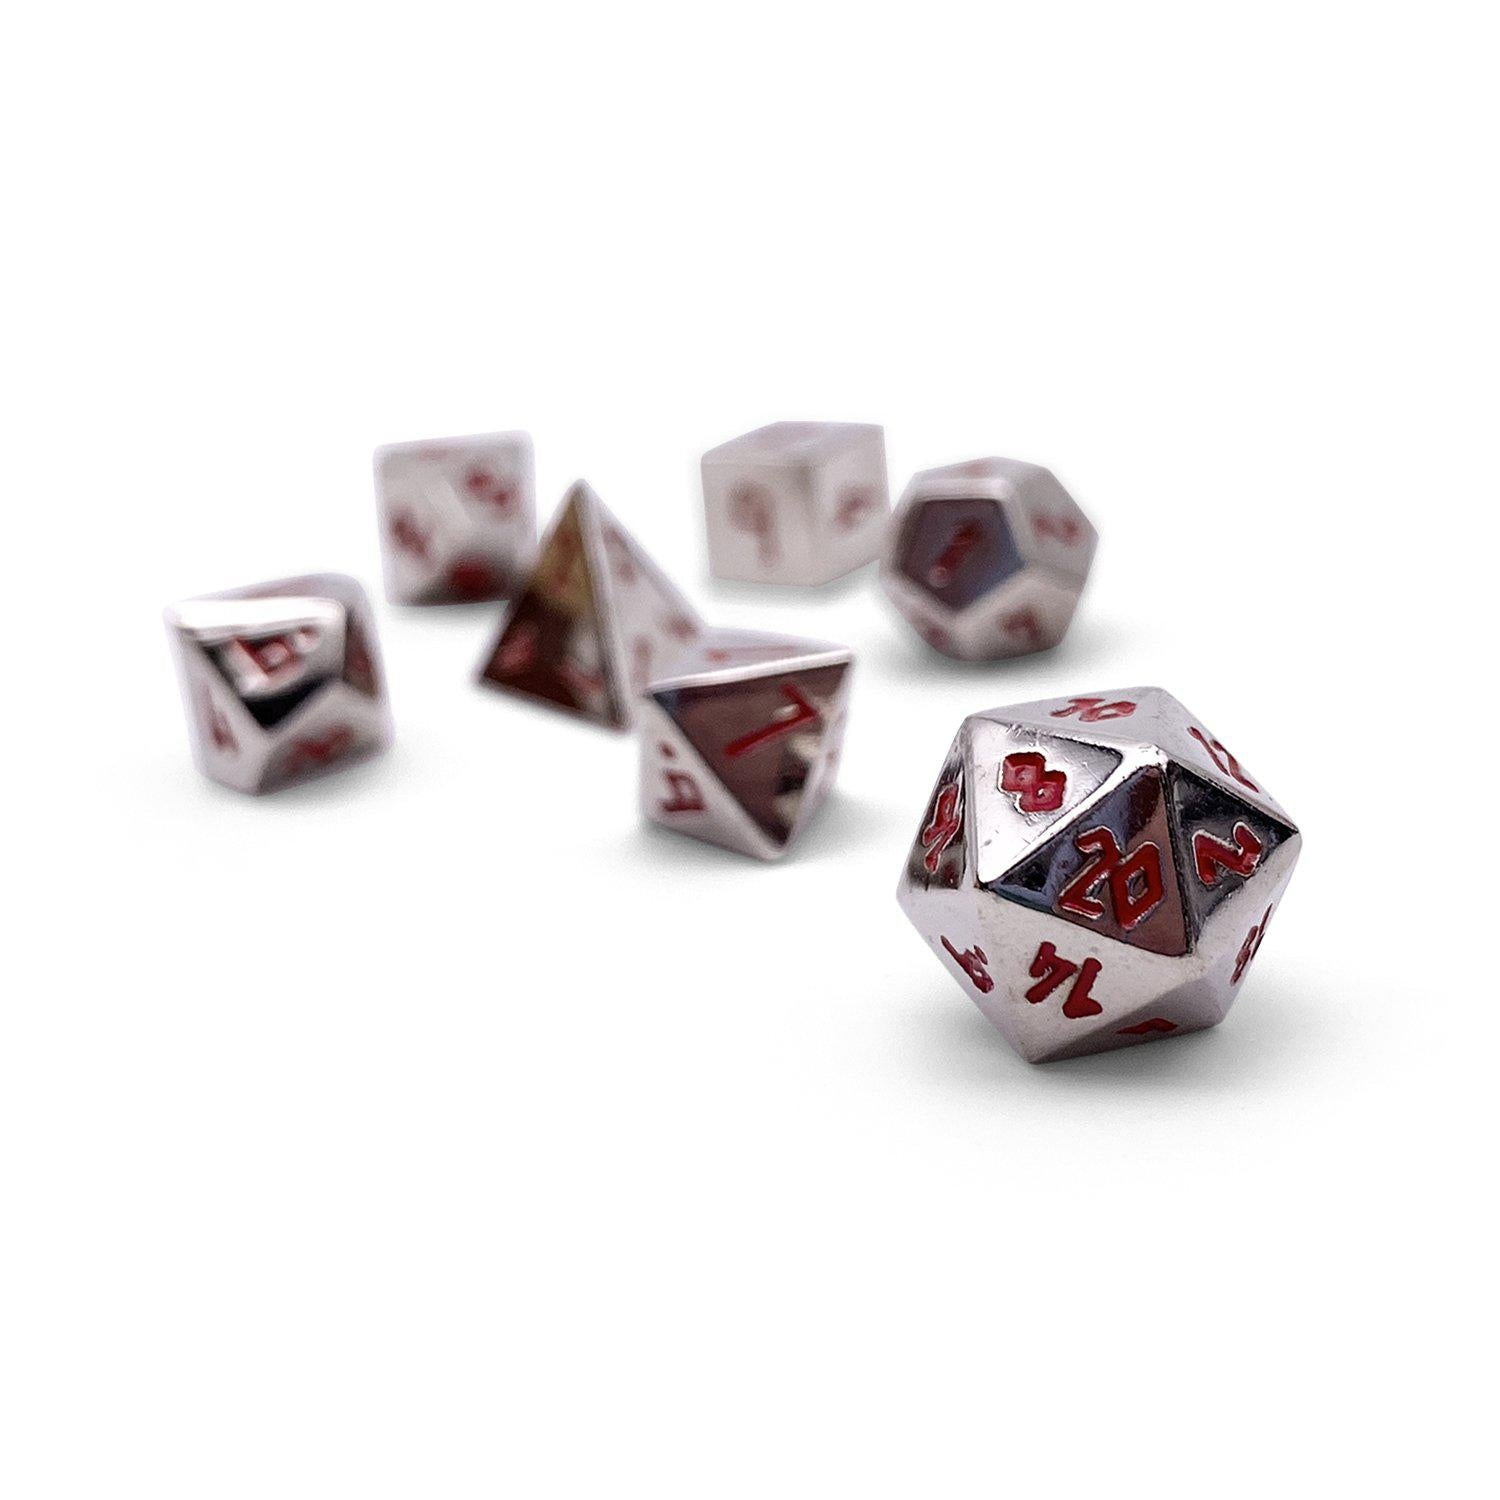 Lycanthrope Silver Pebble ™ Dice - 10mm Alloy Mini Polyhedral Dice Set